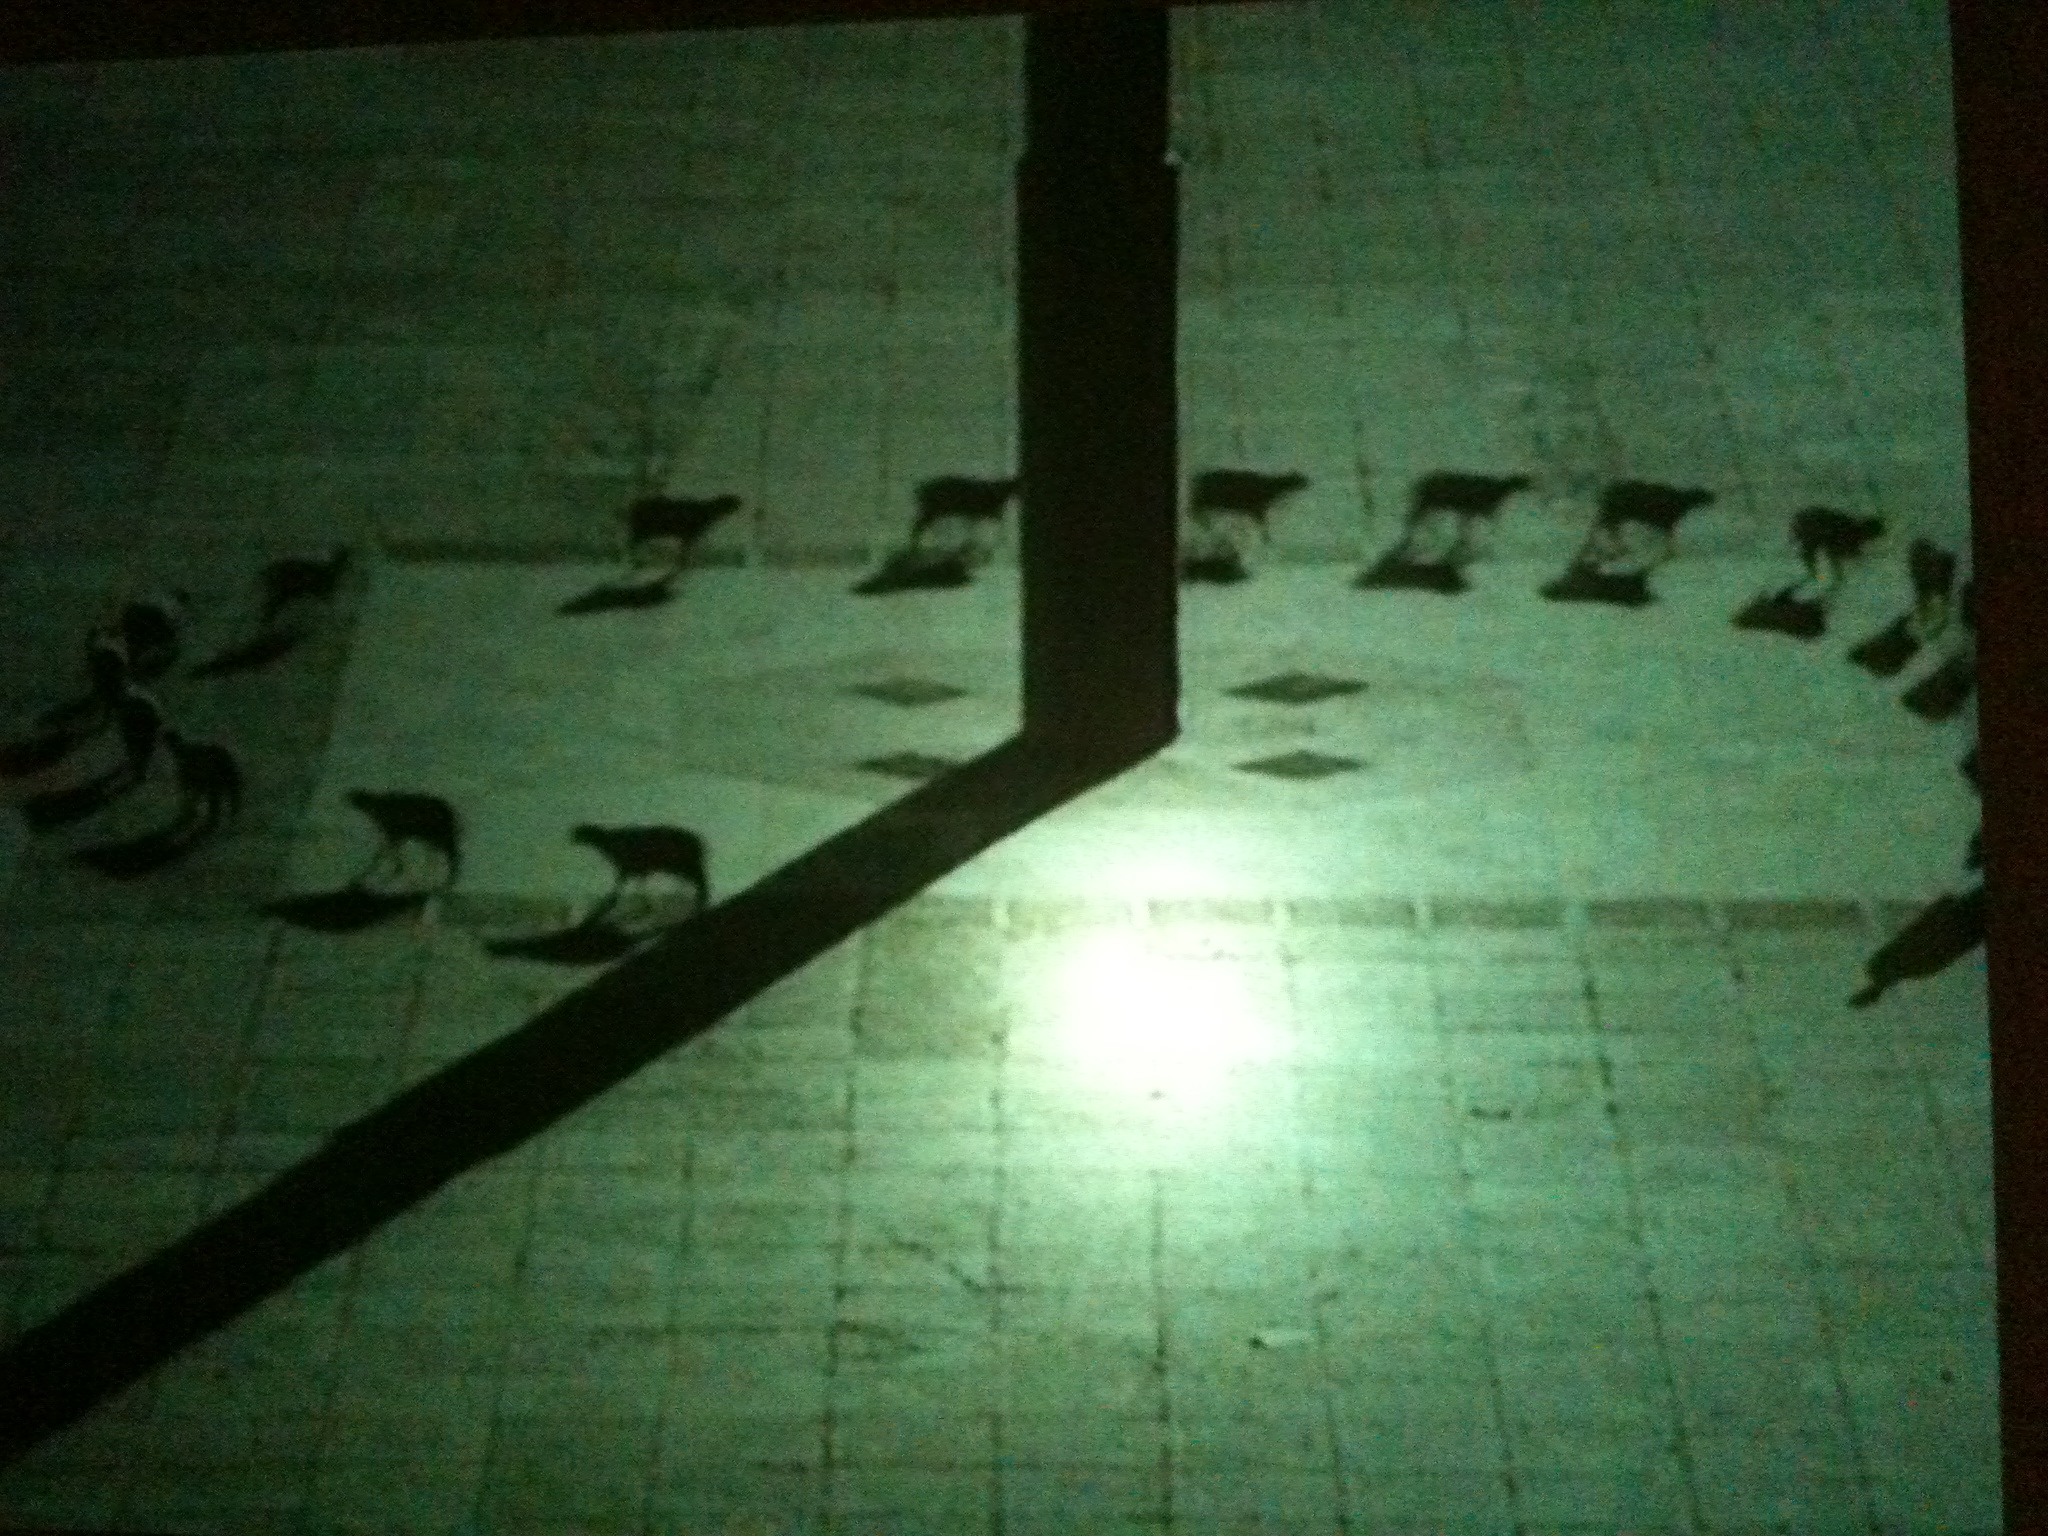 Cuentos Patrioticos, by Francis Alys, a video created by the artist in 1997 as a response to the 1968 upheaval, and on view in the commemorative exhibition at UNAM's art museum in Tlateloco